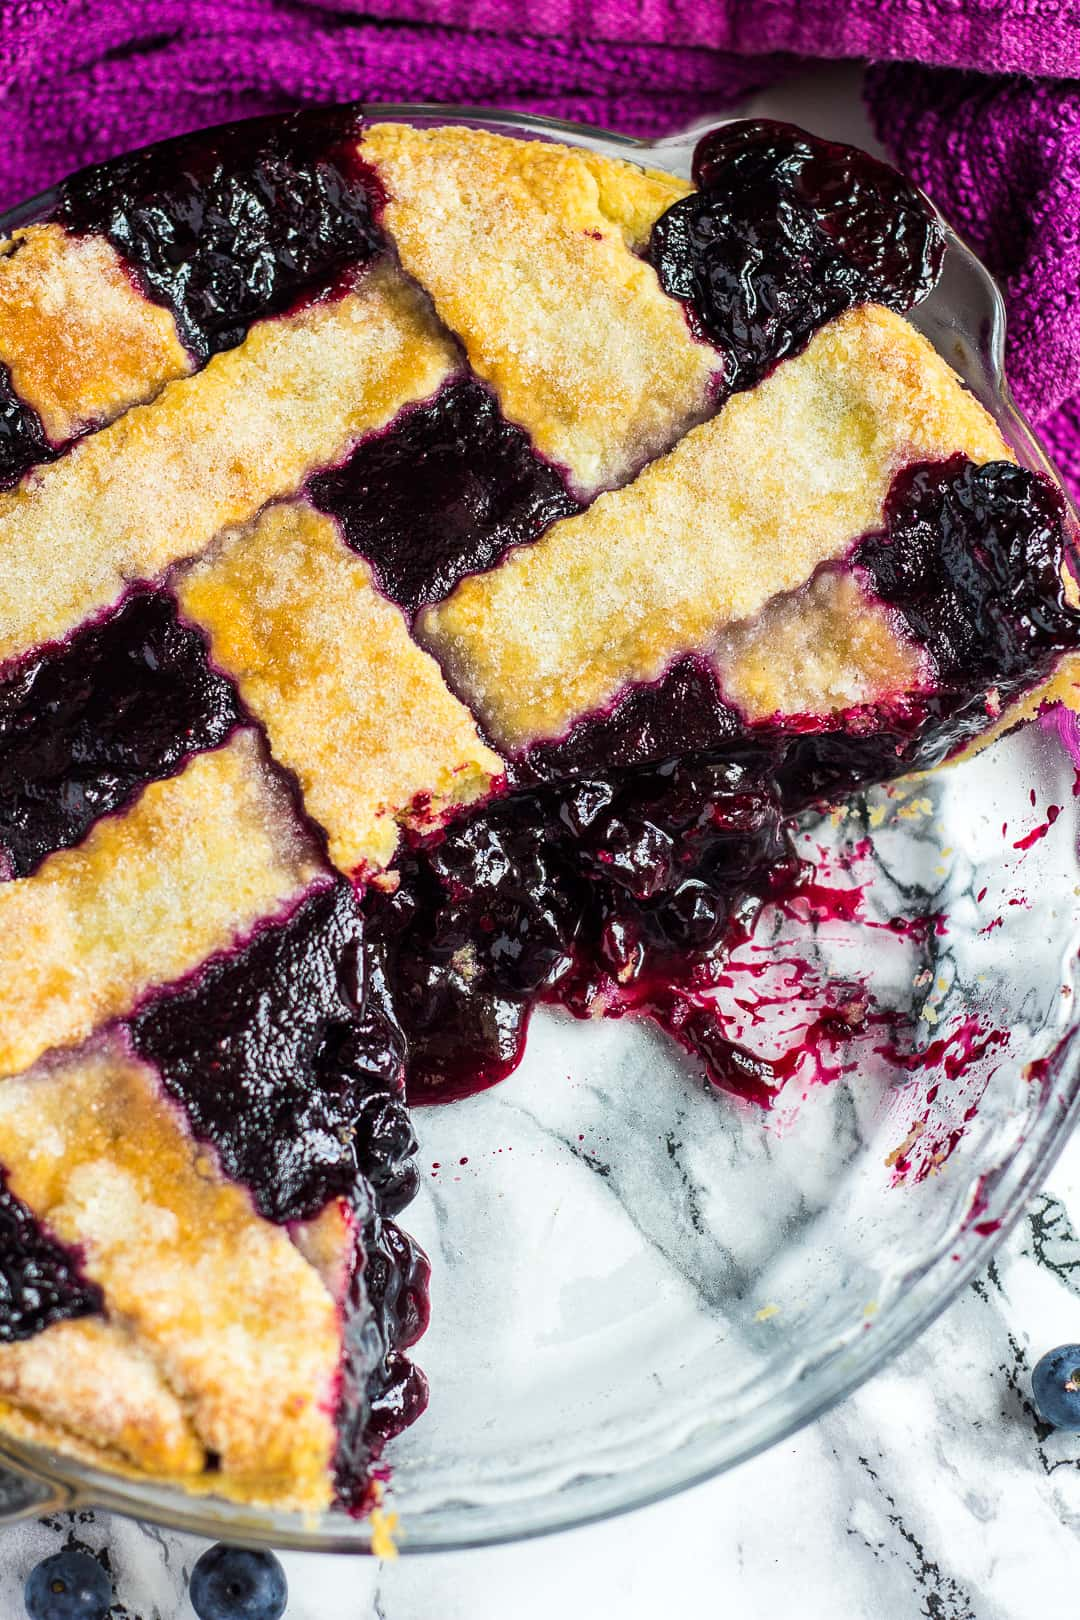 Overhead shot of homemade blueberry pie with slices removed in a glass pie dish.